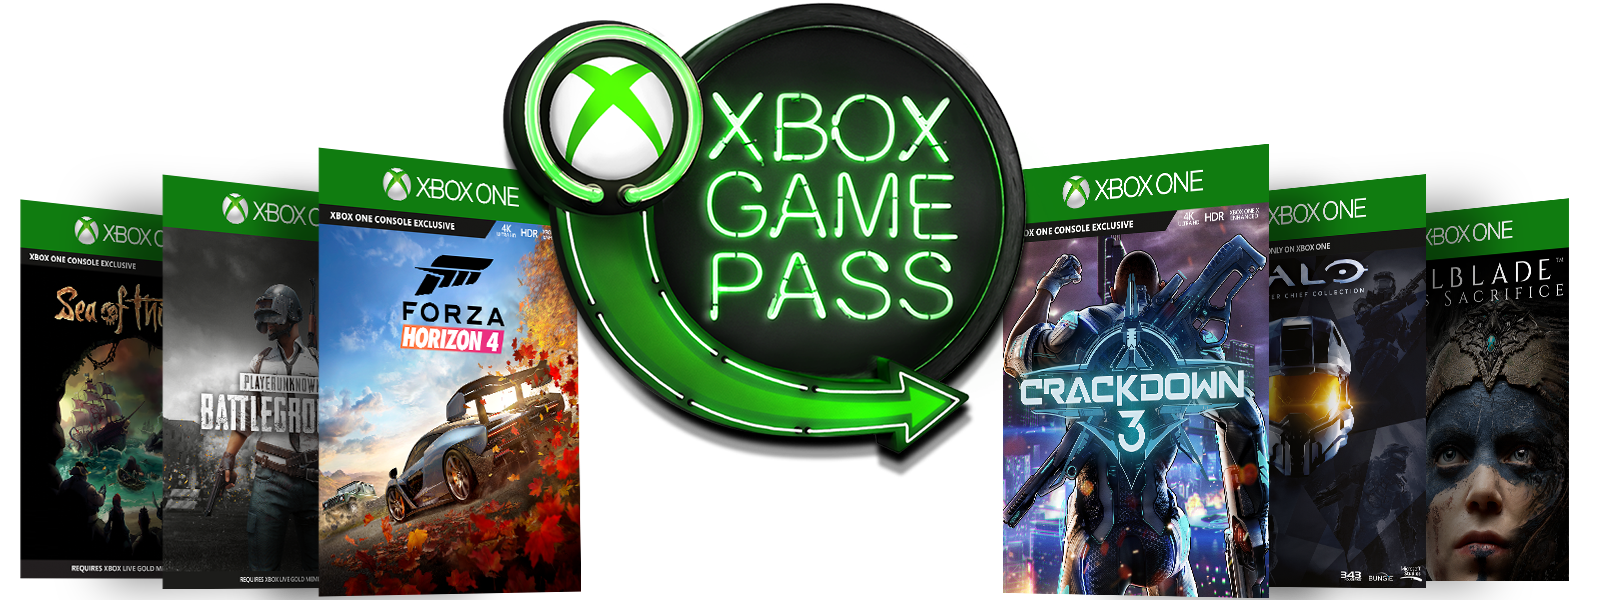 Xbox Game Pass 네온 사인 로고를 둘러싼 Sea of Thieves, PLAYERUNKNOWNS Battleground, Forza Horizon 4, Crackdown 3, Halo The Master Chief Collection, Hellblade Senuas Sacrifice 박스샷